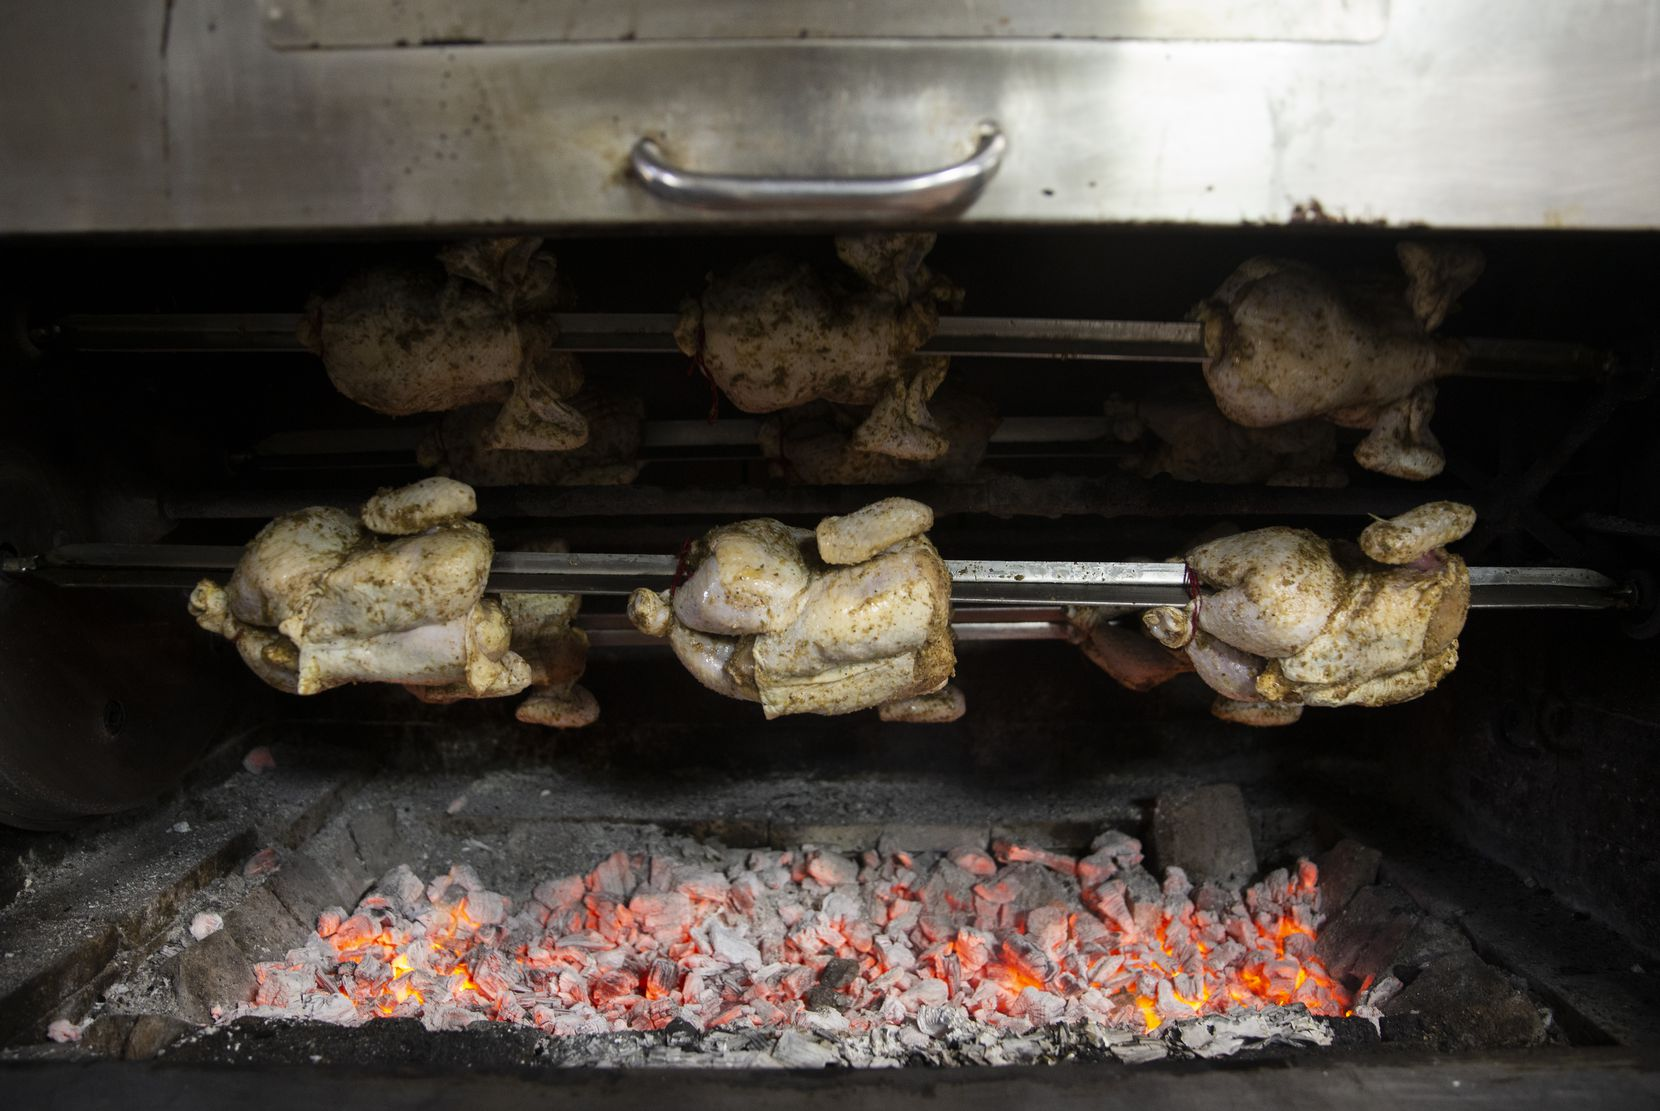 The pollo a la brasa (Peruvian roasted chicken) roasts in the oven at the Brasa Bar and Grill in Richardson.